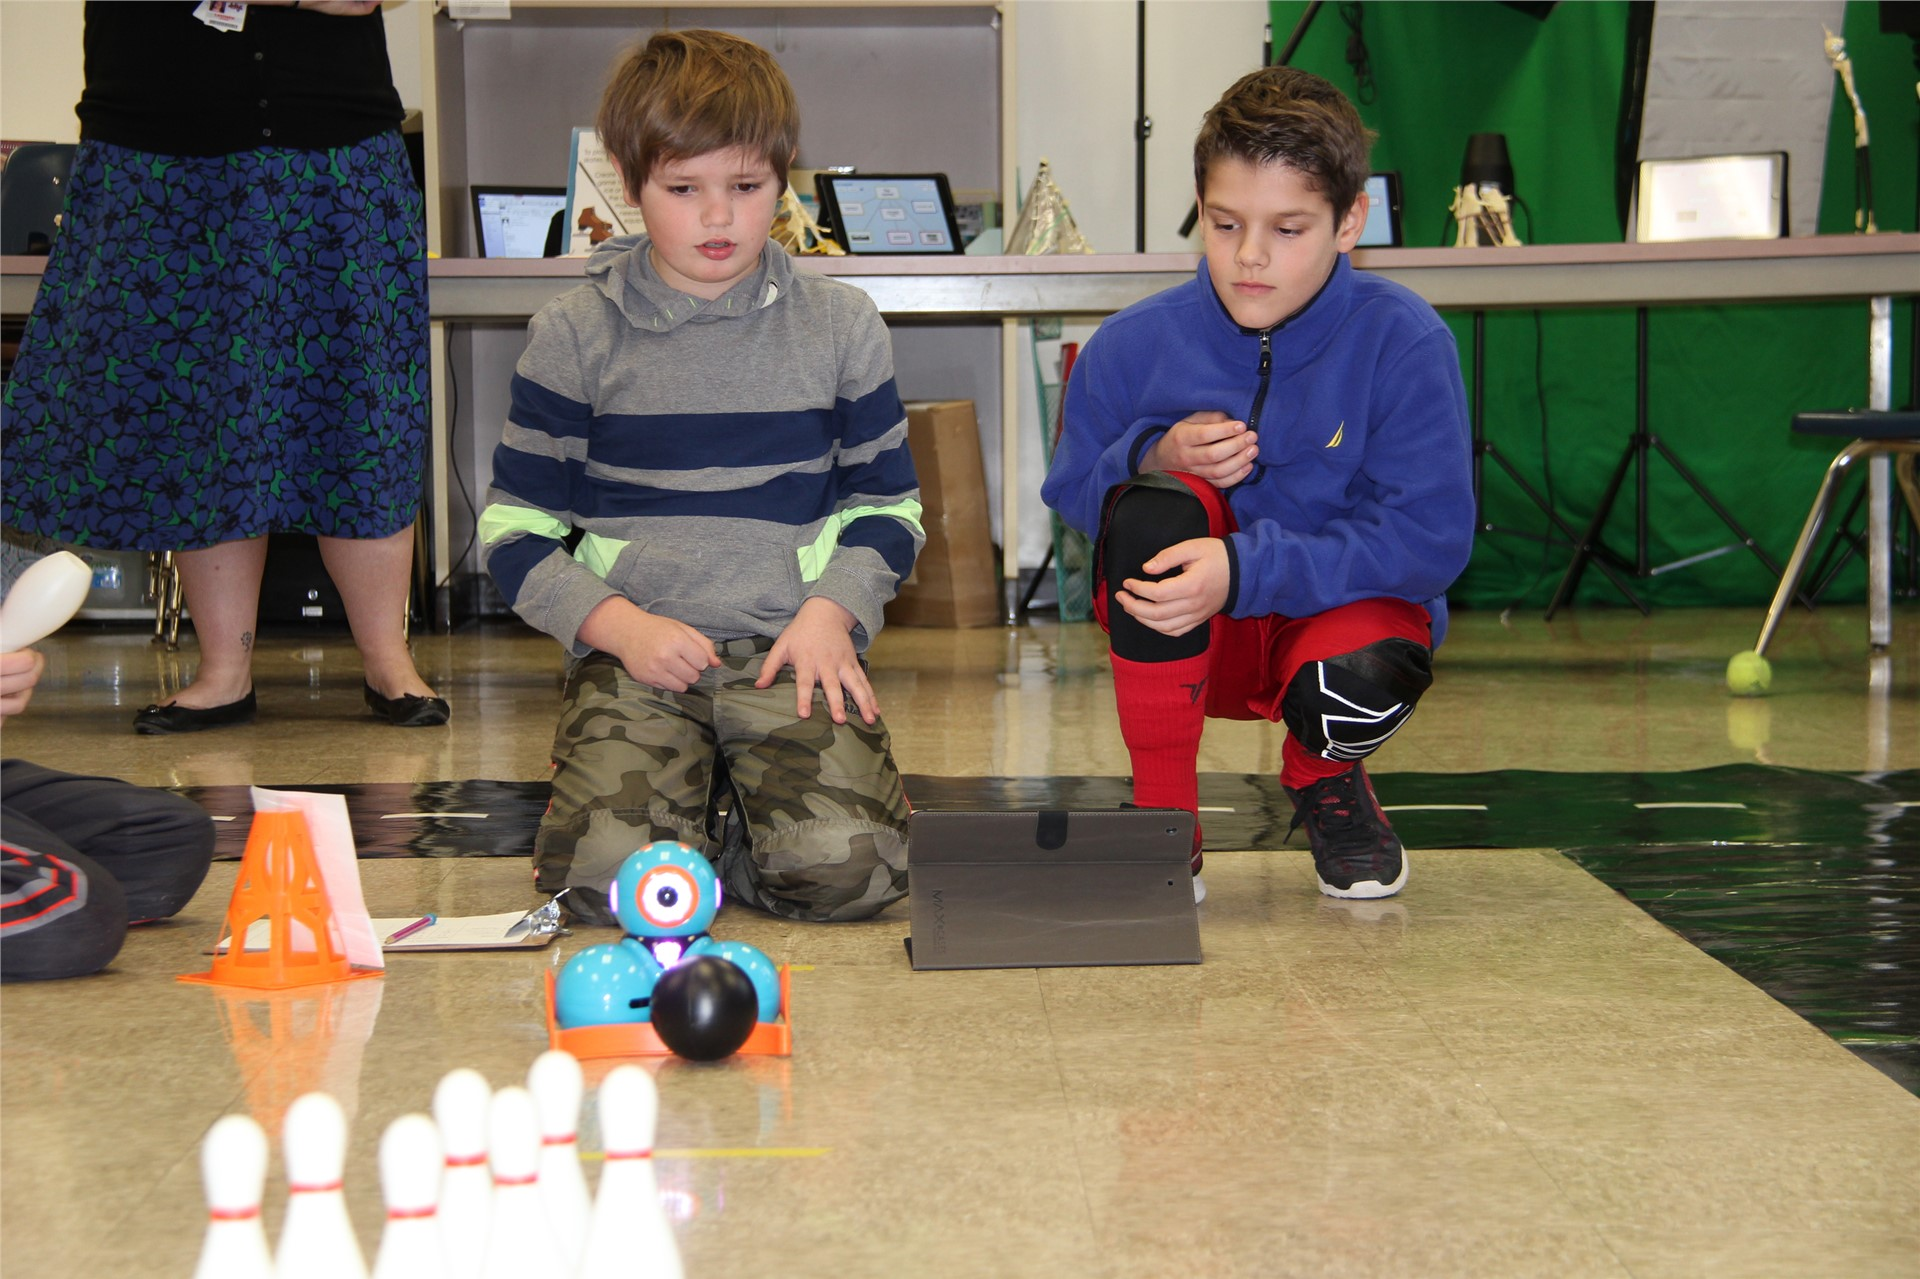 two students watch electronic device move towards bowling pins